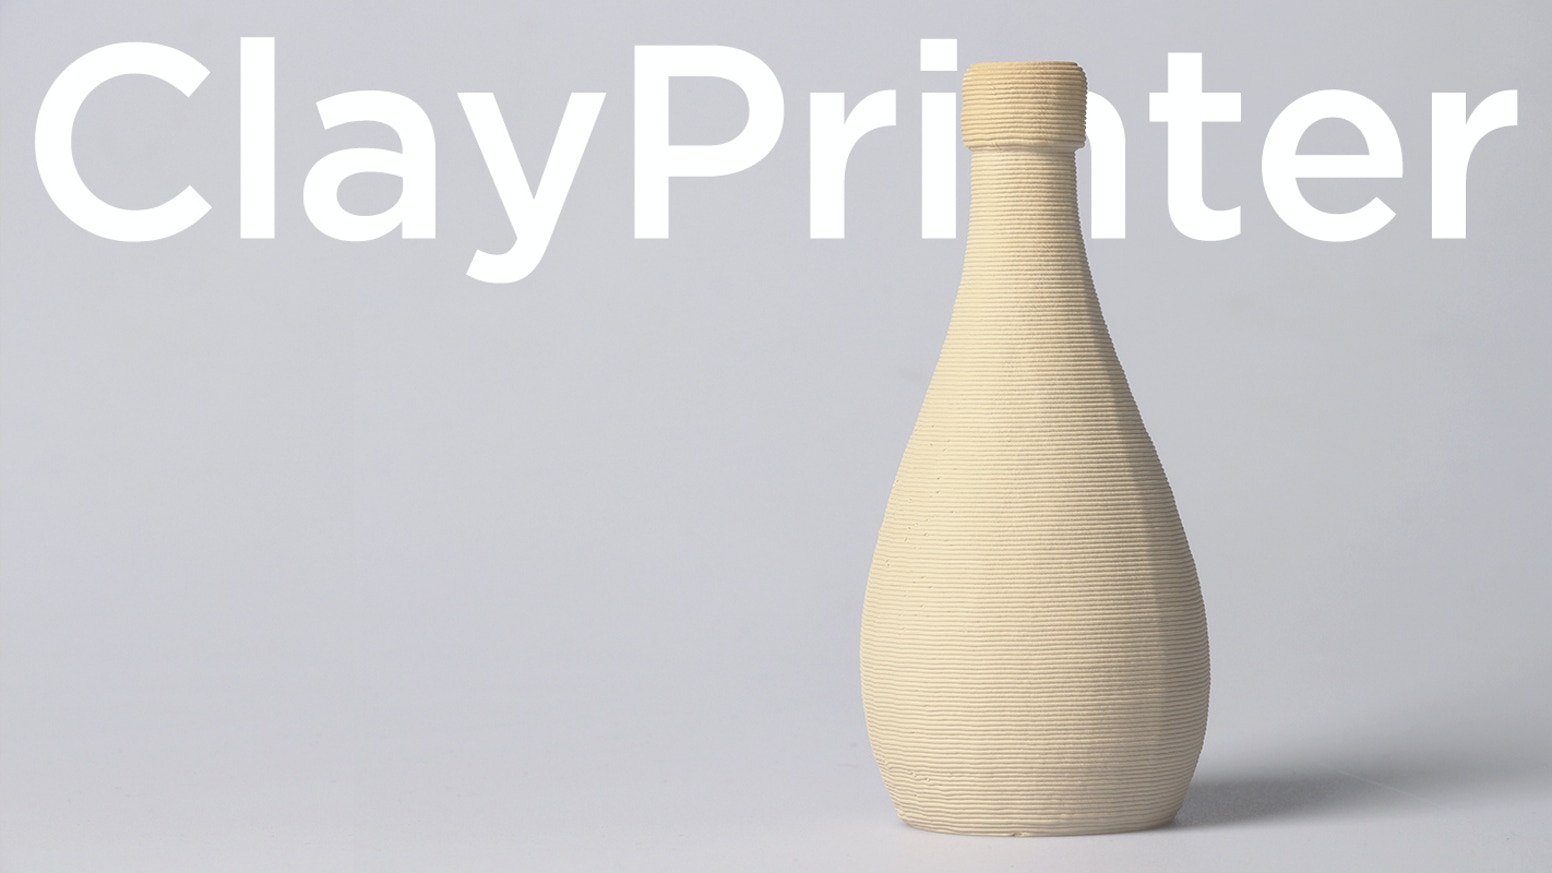 ClayXYZ combines 3D Printing with Reusable Natural Material to create  intricately textured ceramic artwork. Affordable